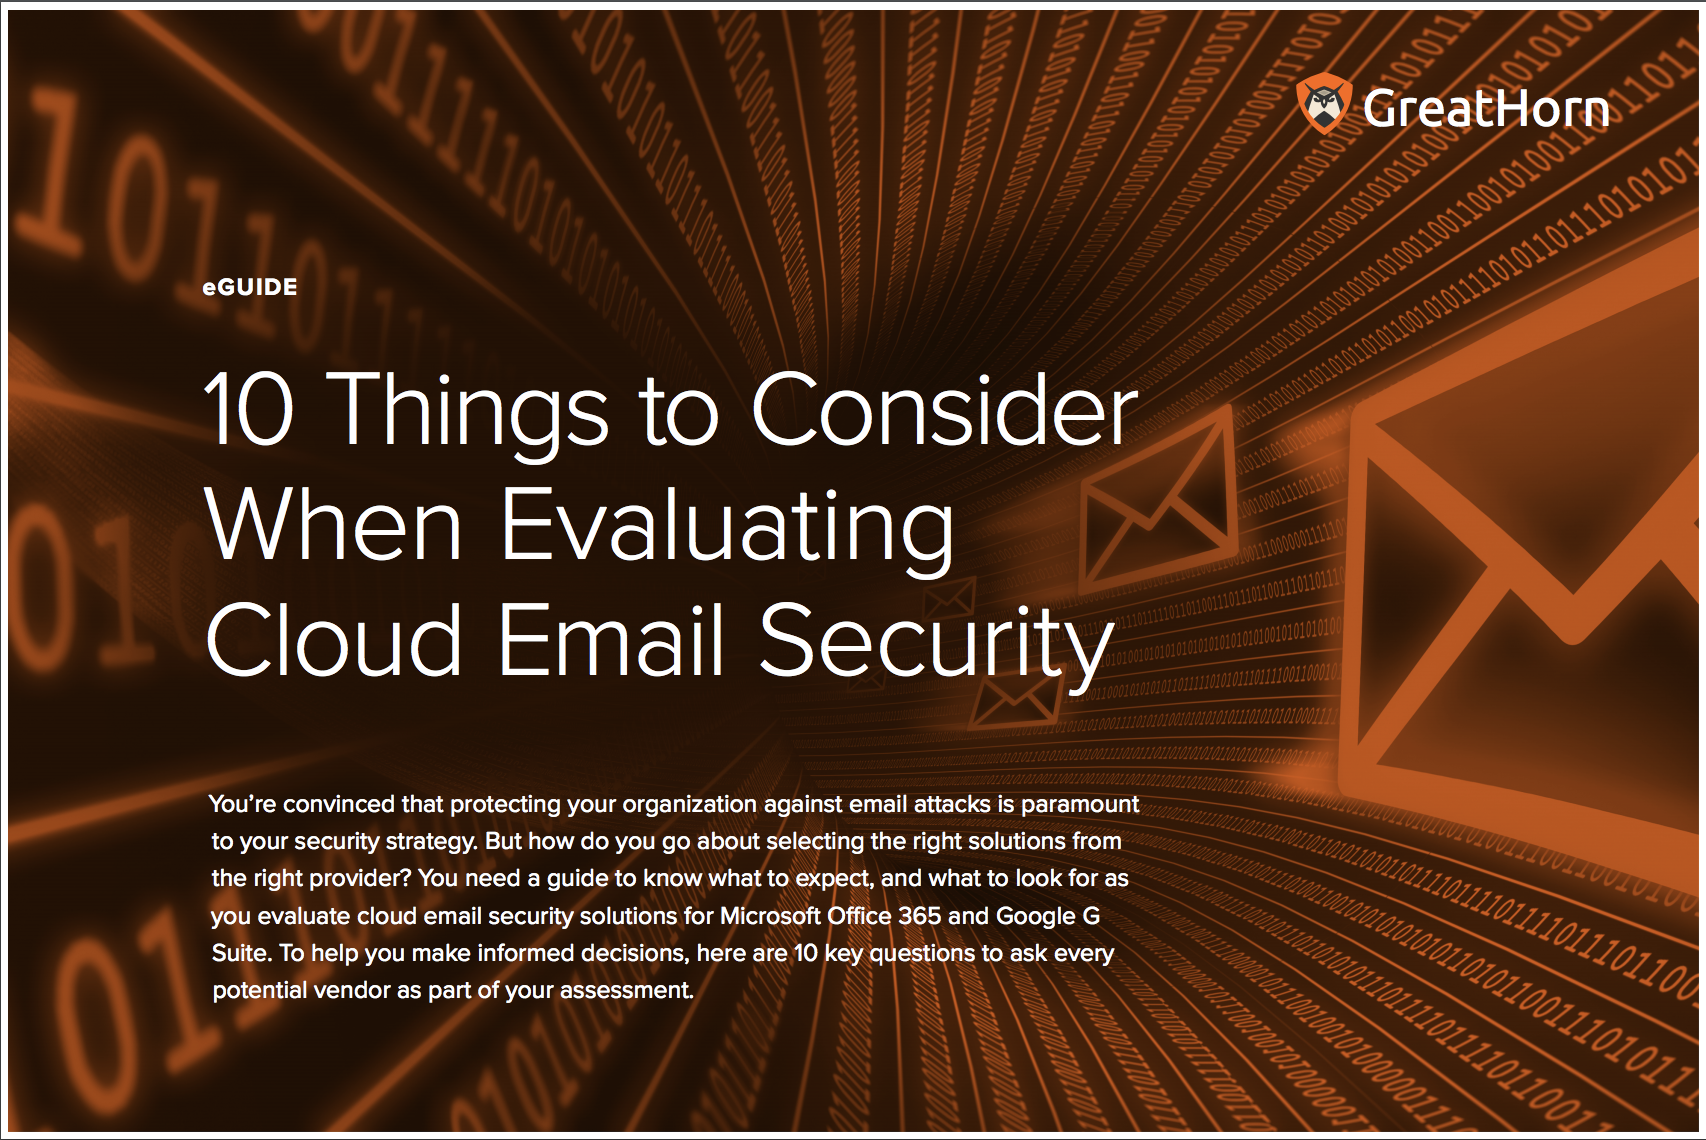 Email-Security-Evaluation-eGuide